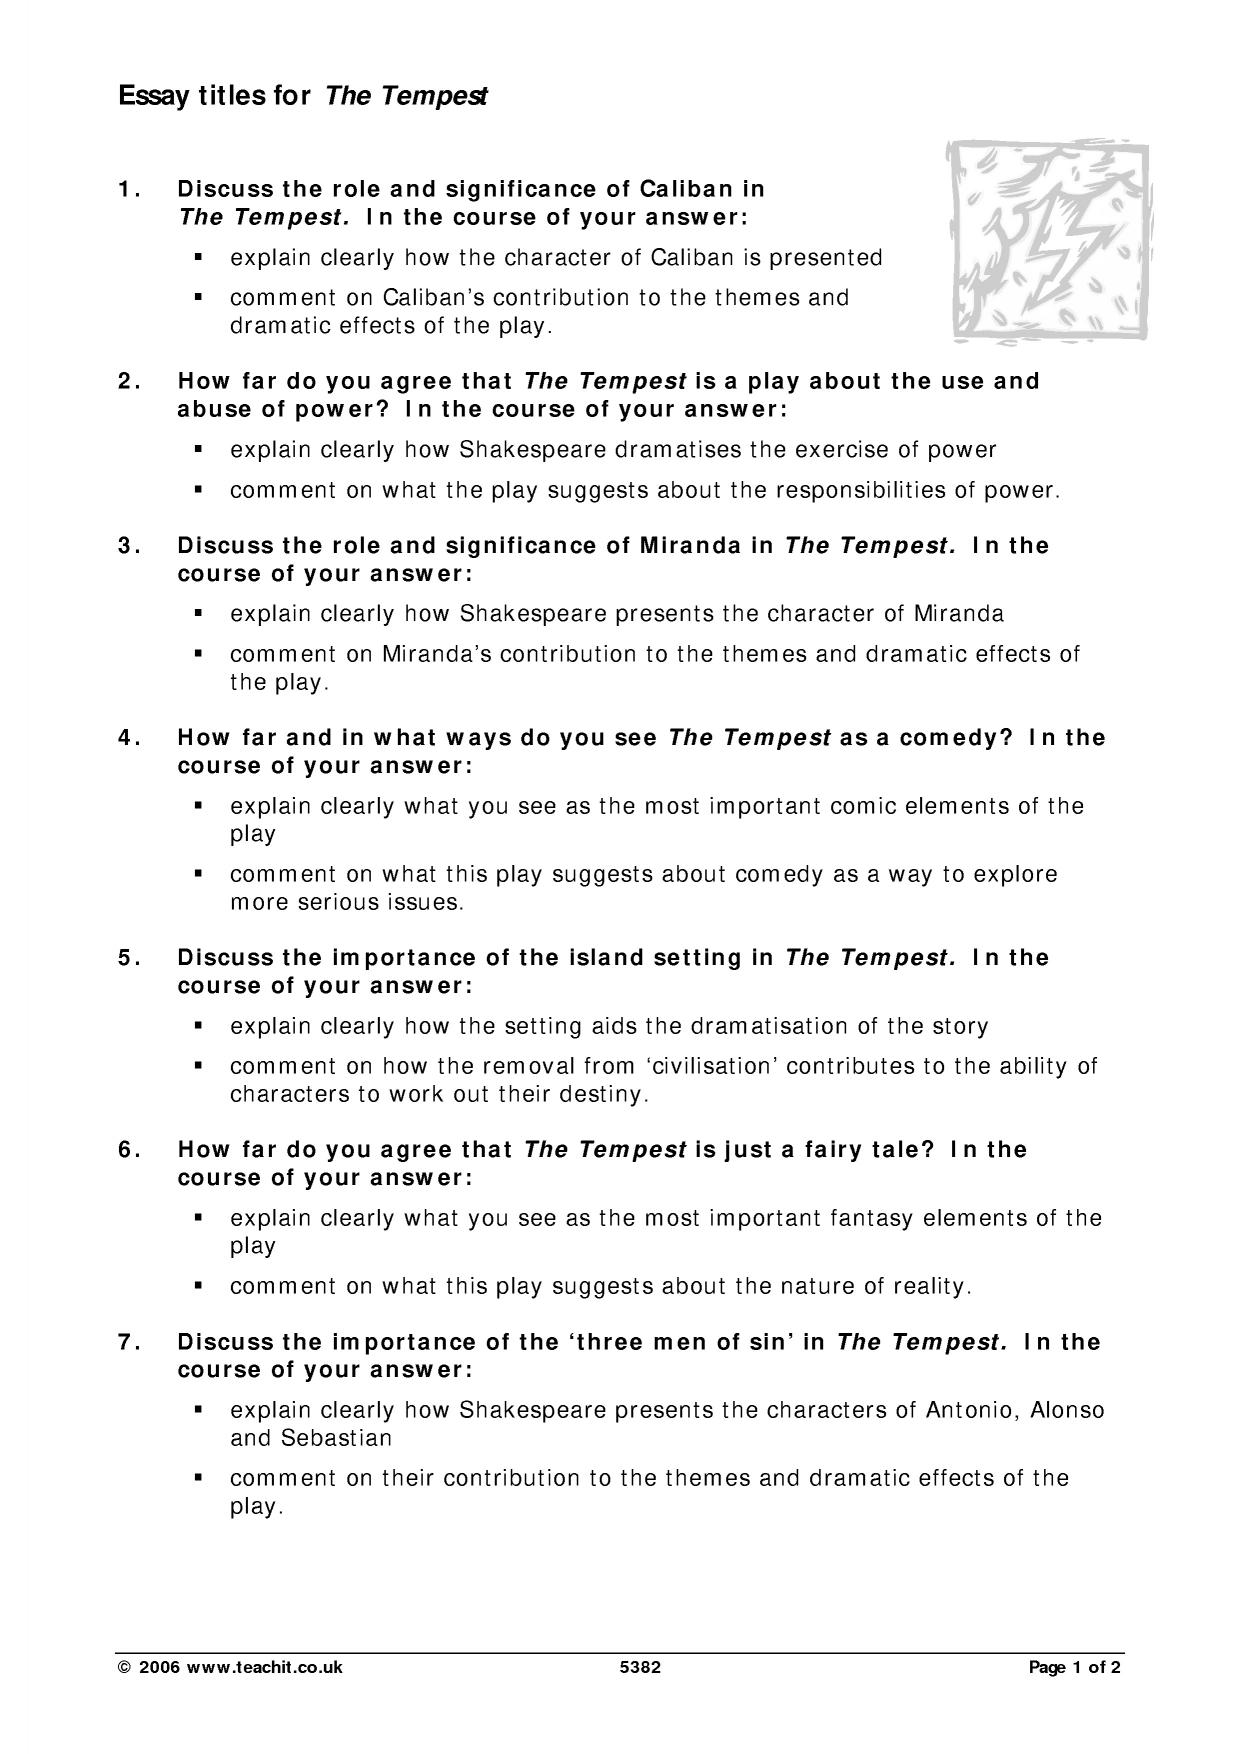 essay questions for the tempest Essay questions and topics 1 shakespeare gives prospero magical powers what types of things does this allow shakespeare as the author to do and illuminate with.